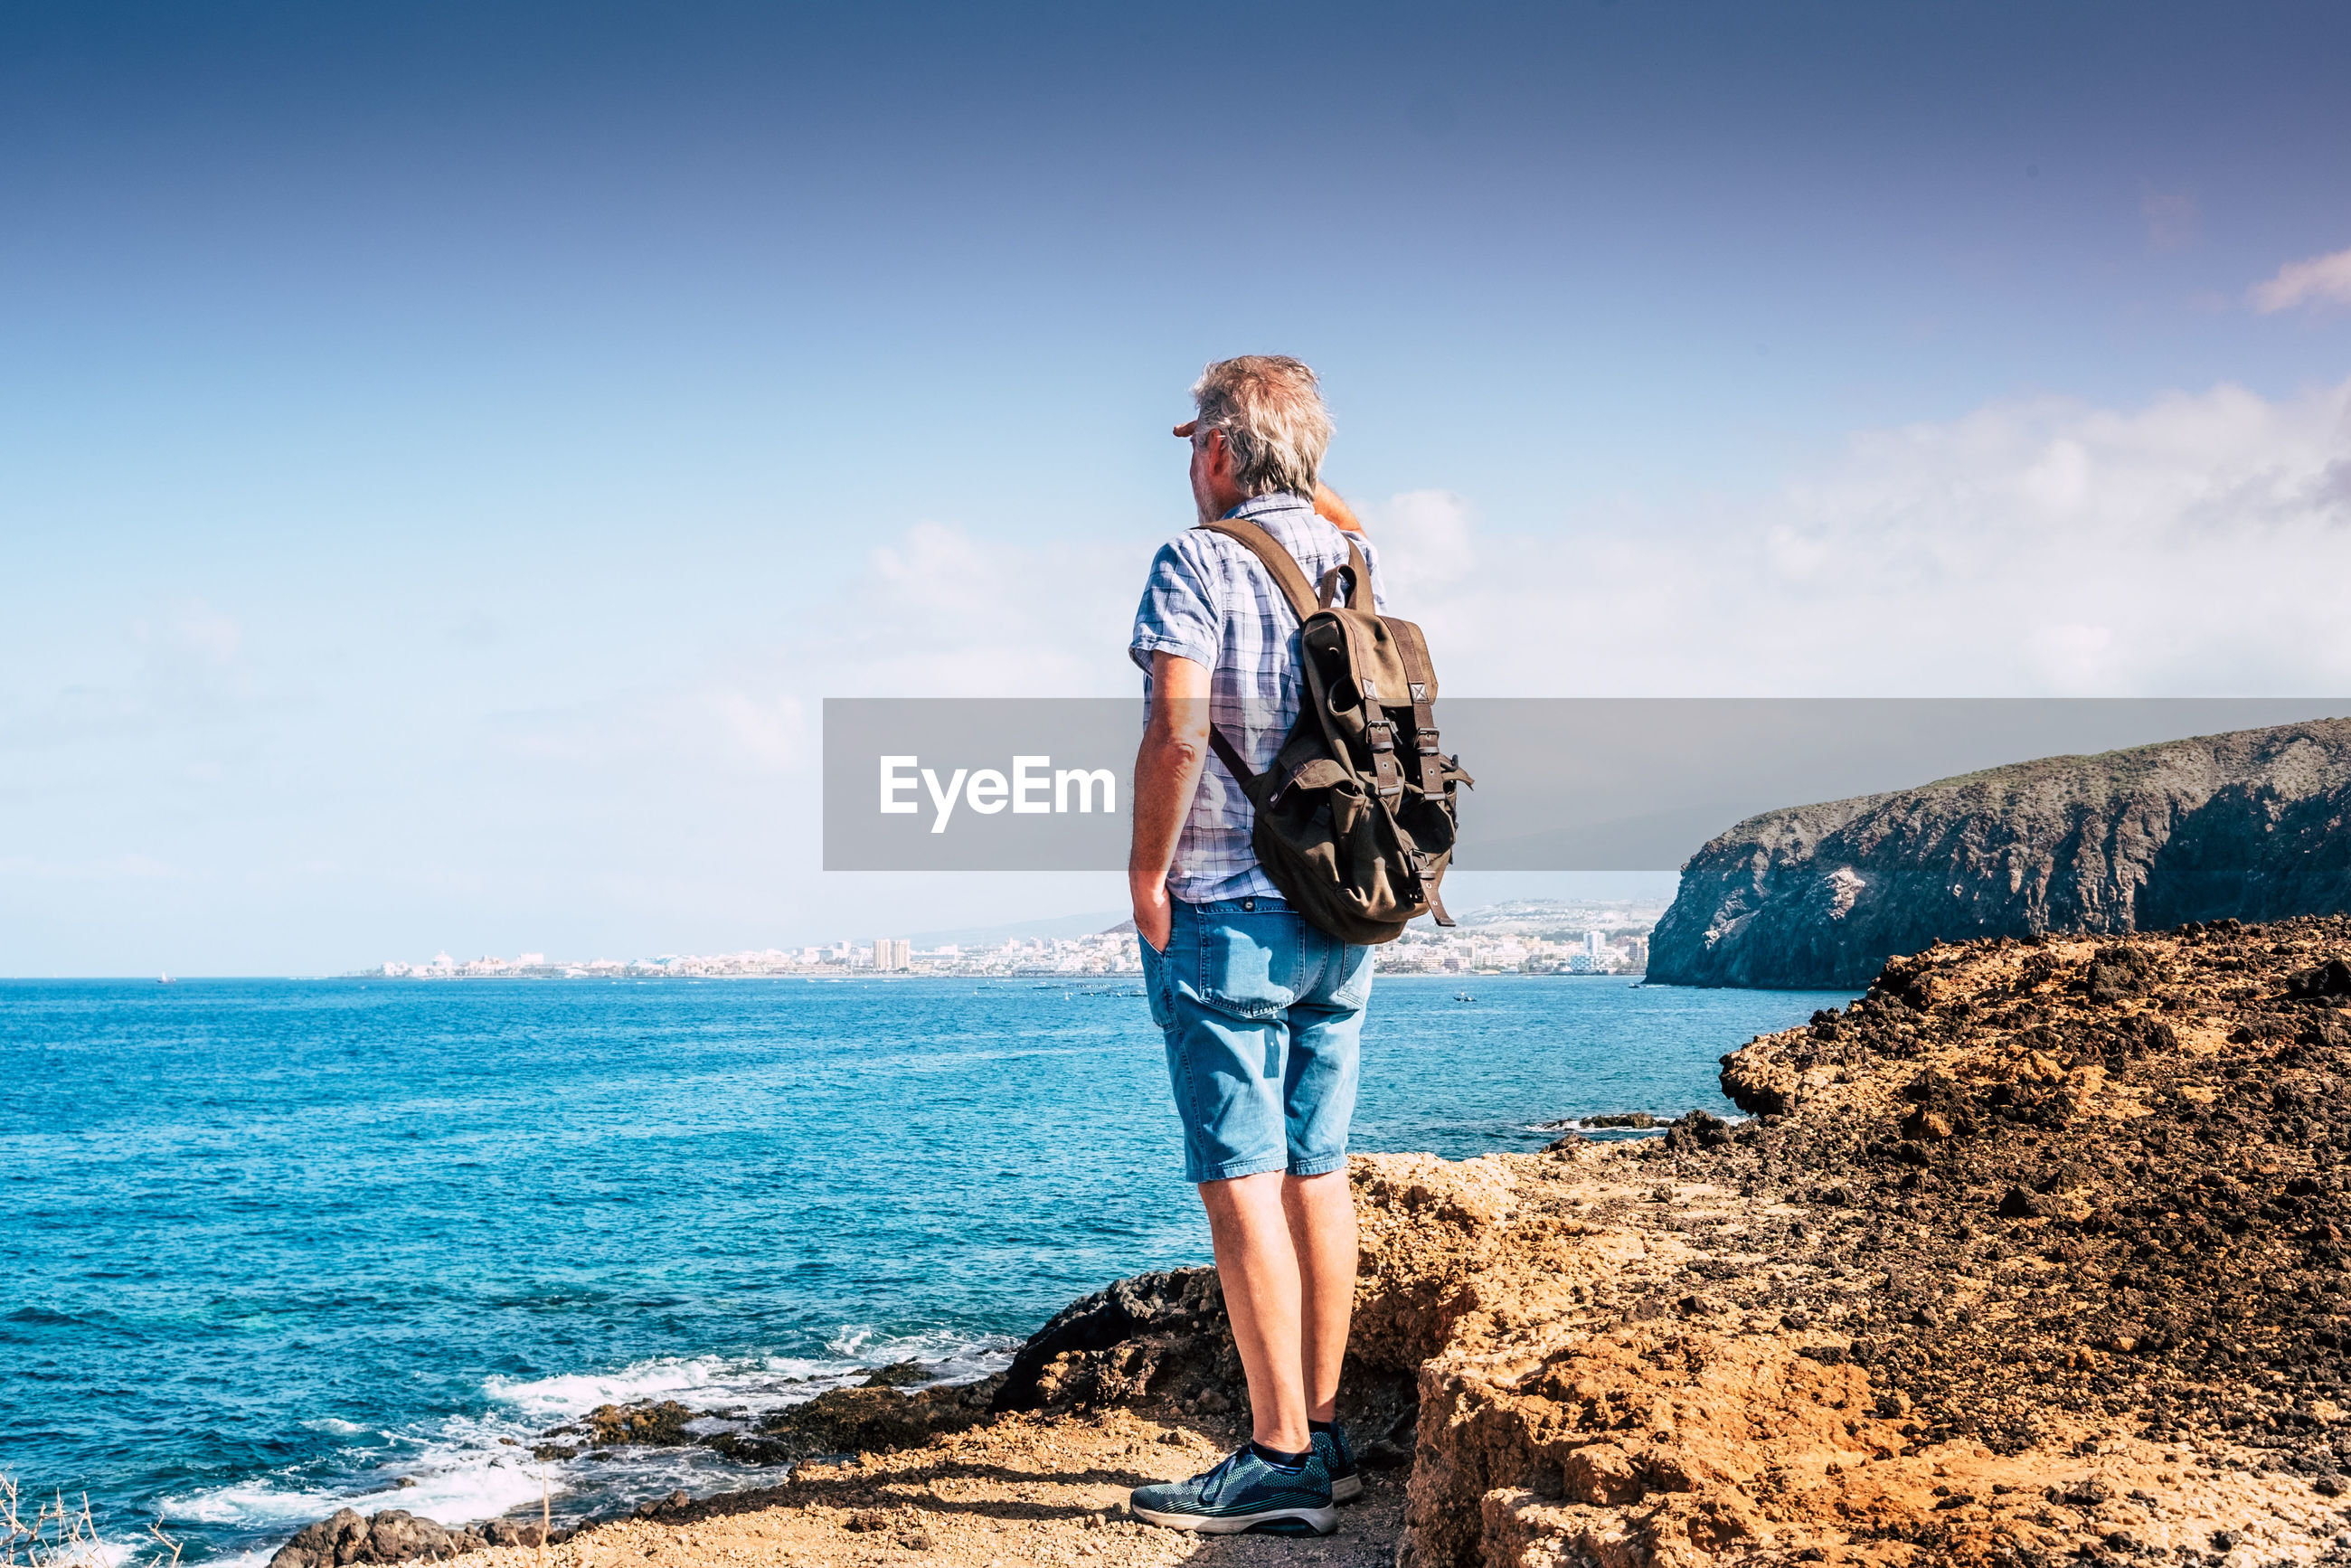 Rear view of man looking at sea while standing on rock against sky during sunny day